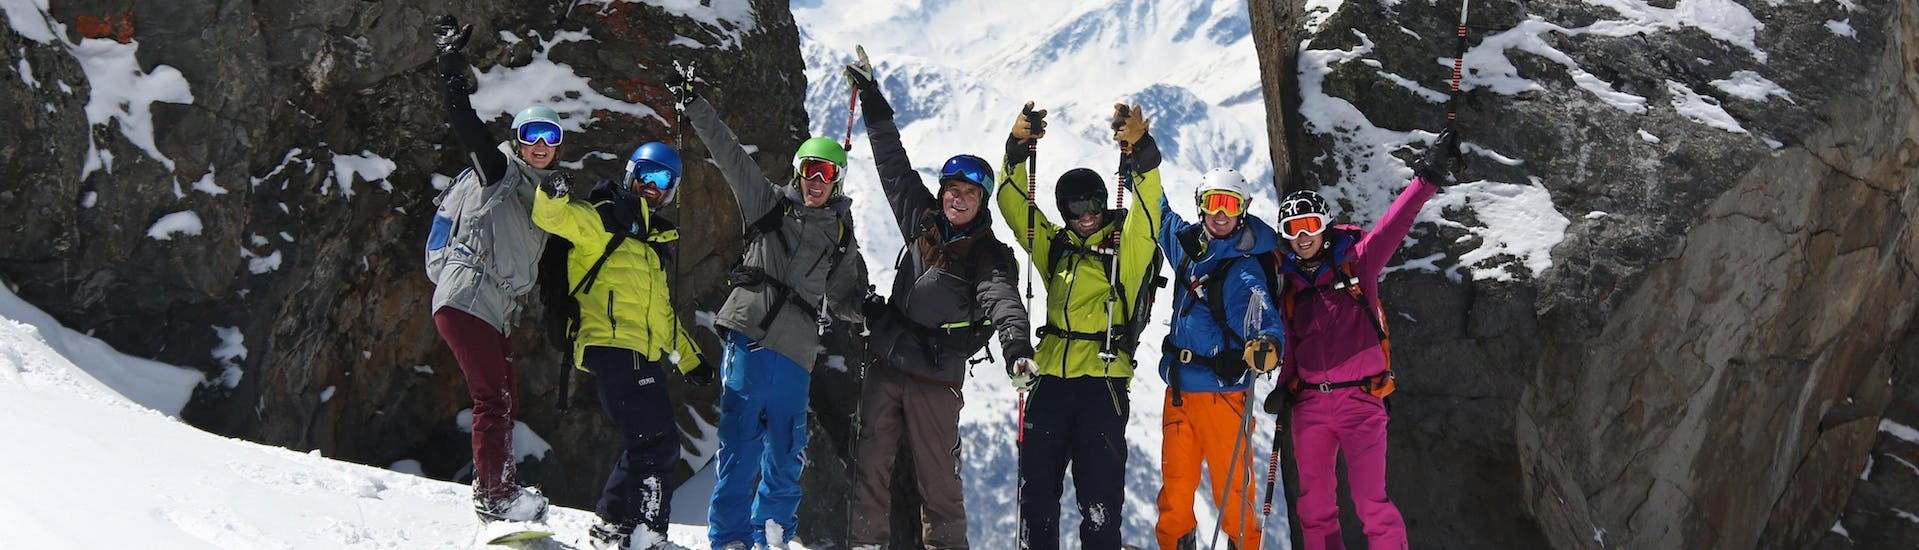 Two snowboarders are taking picture with friends during the Snowboarding Lessons for Adults - All Levels organised by the school Prosneige Val d'Isère.